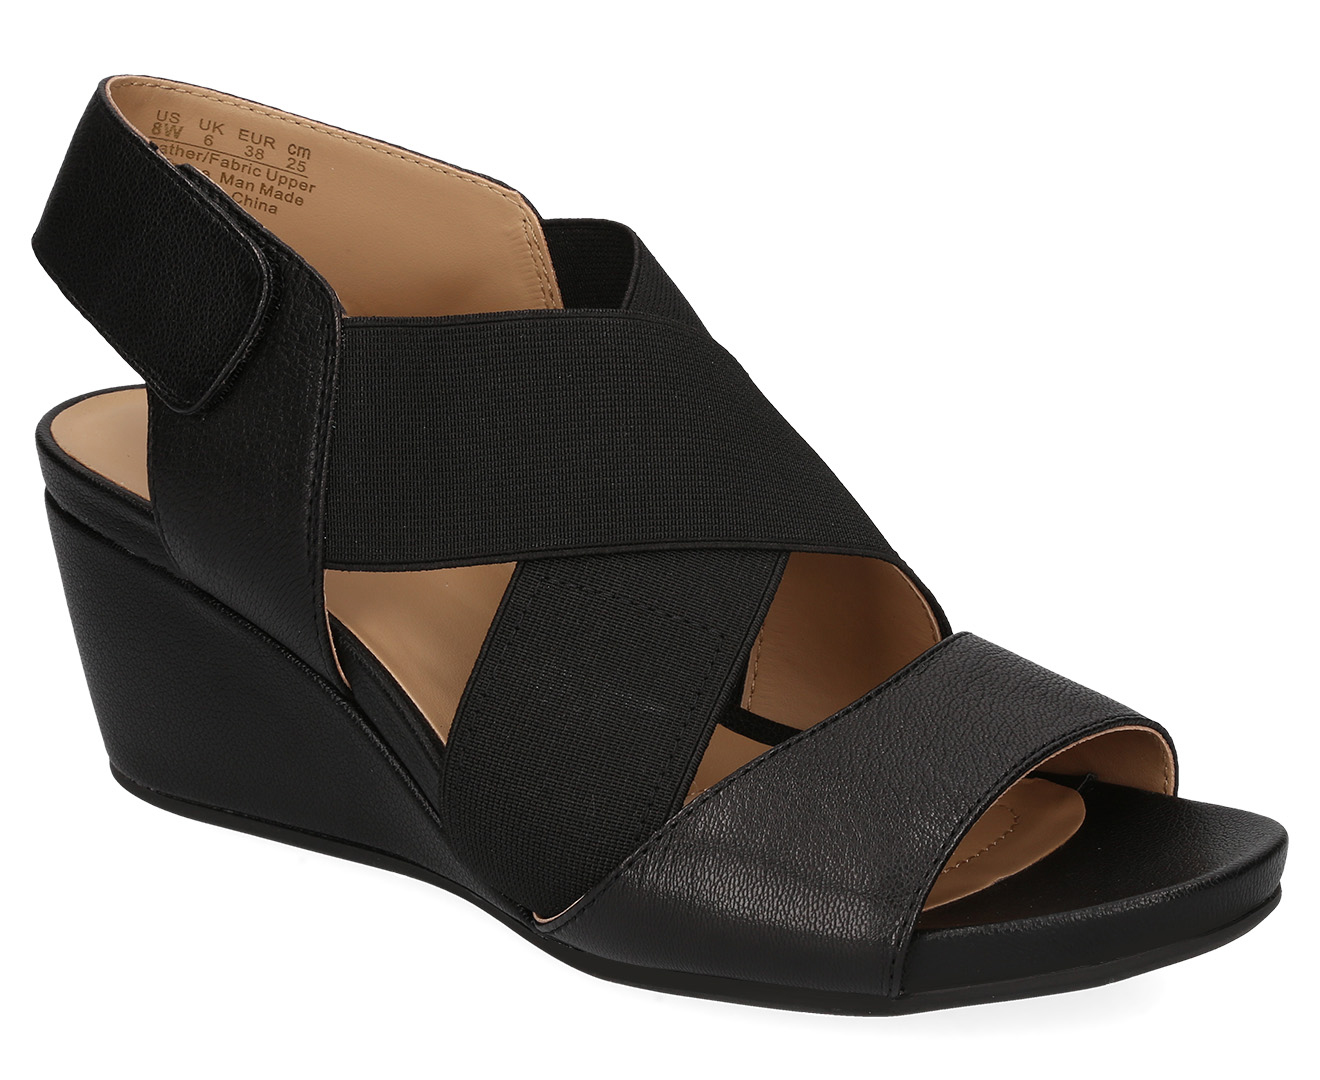 Details about Naturalizer Women's Cleo Wedge Sandal Black